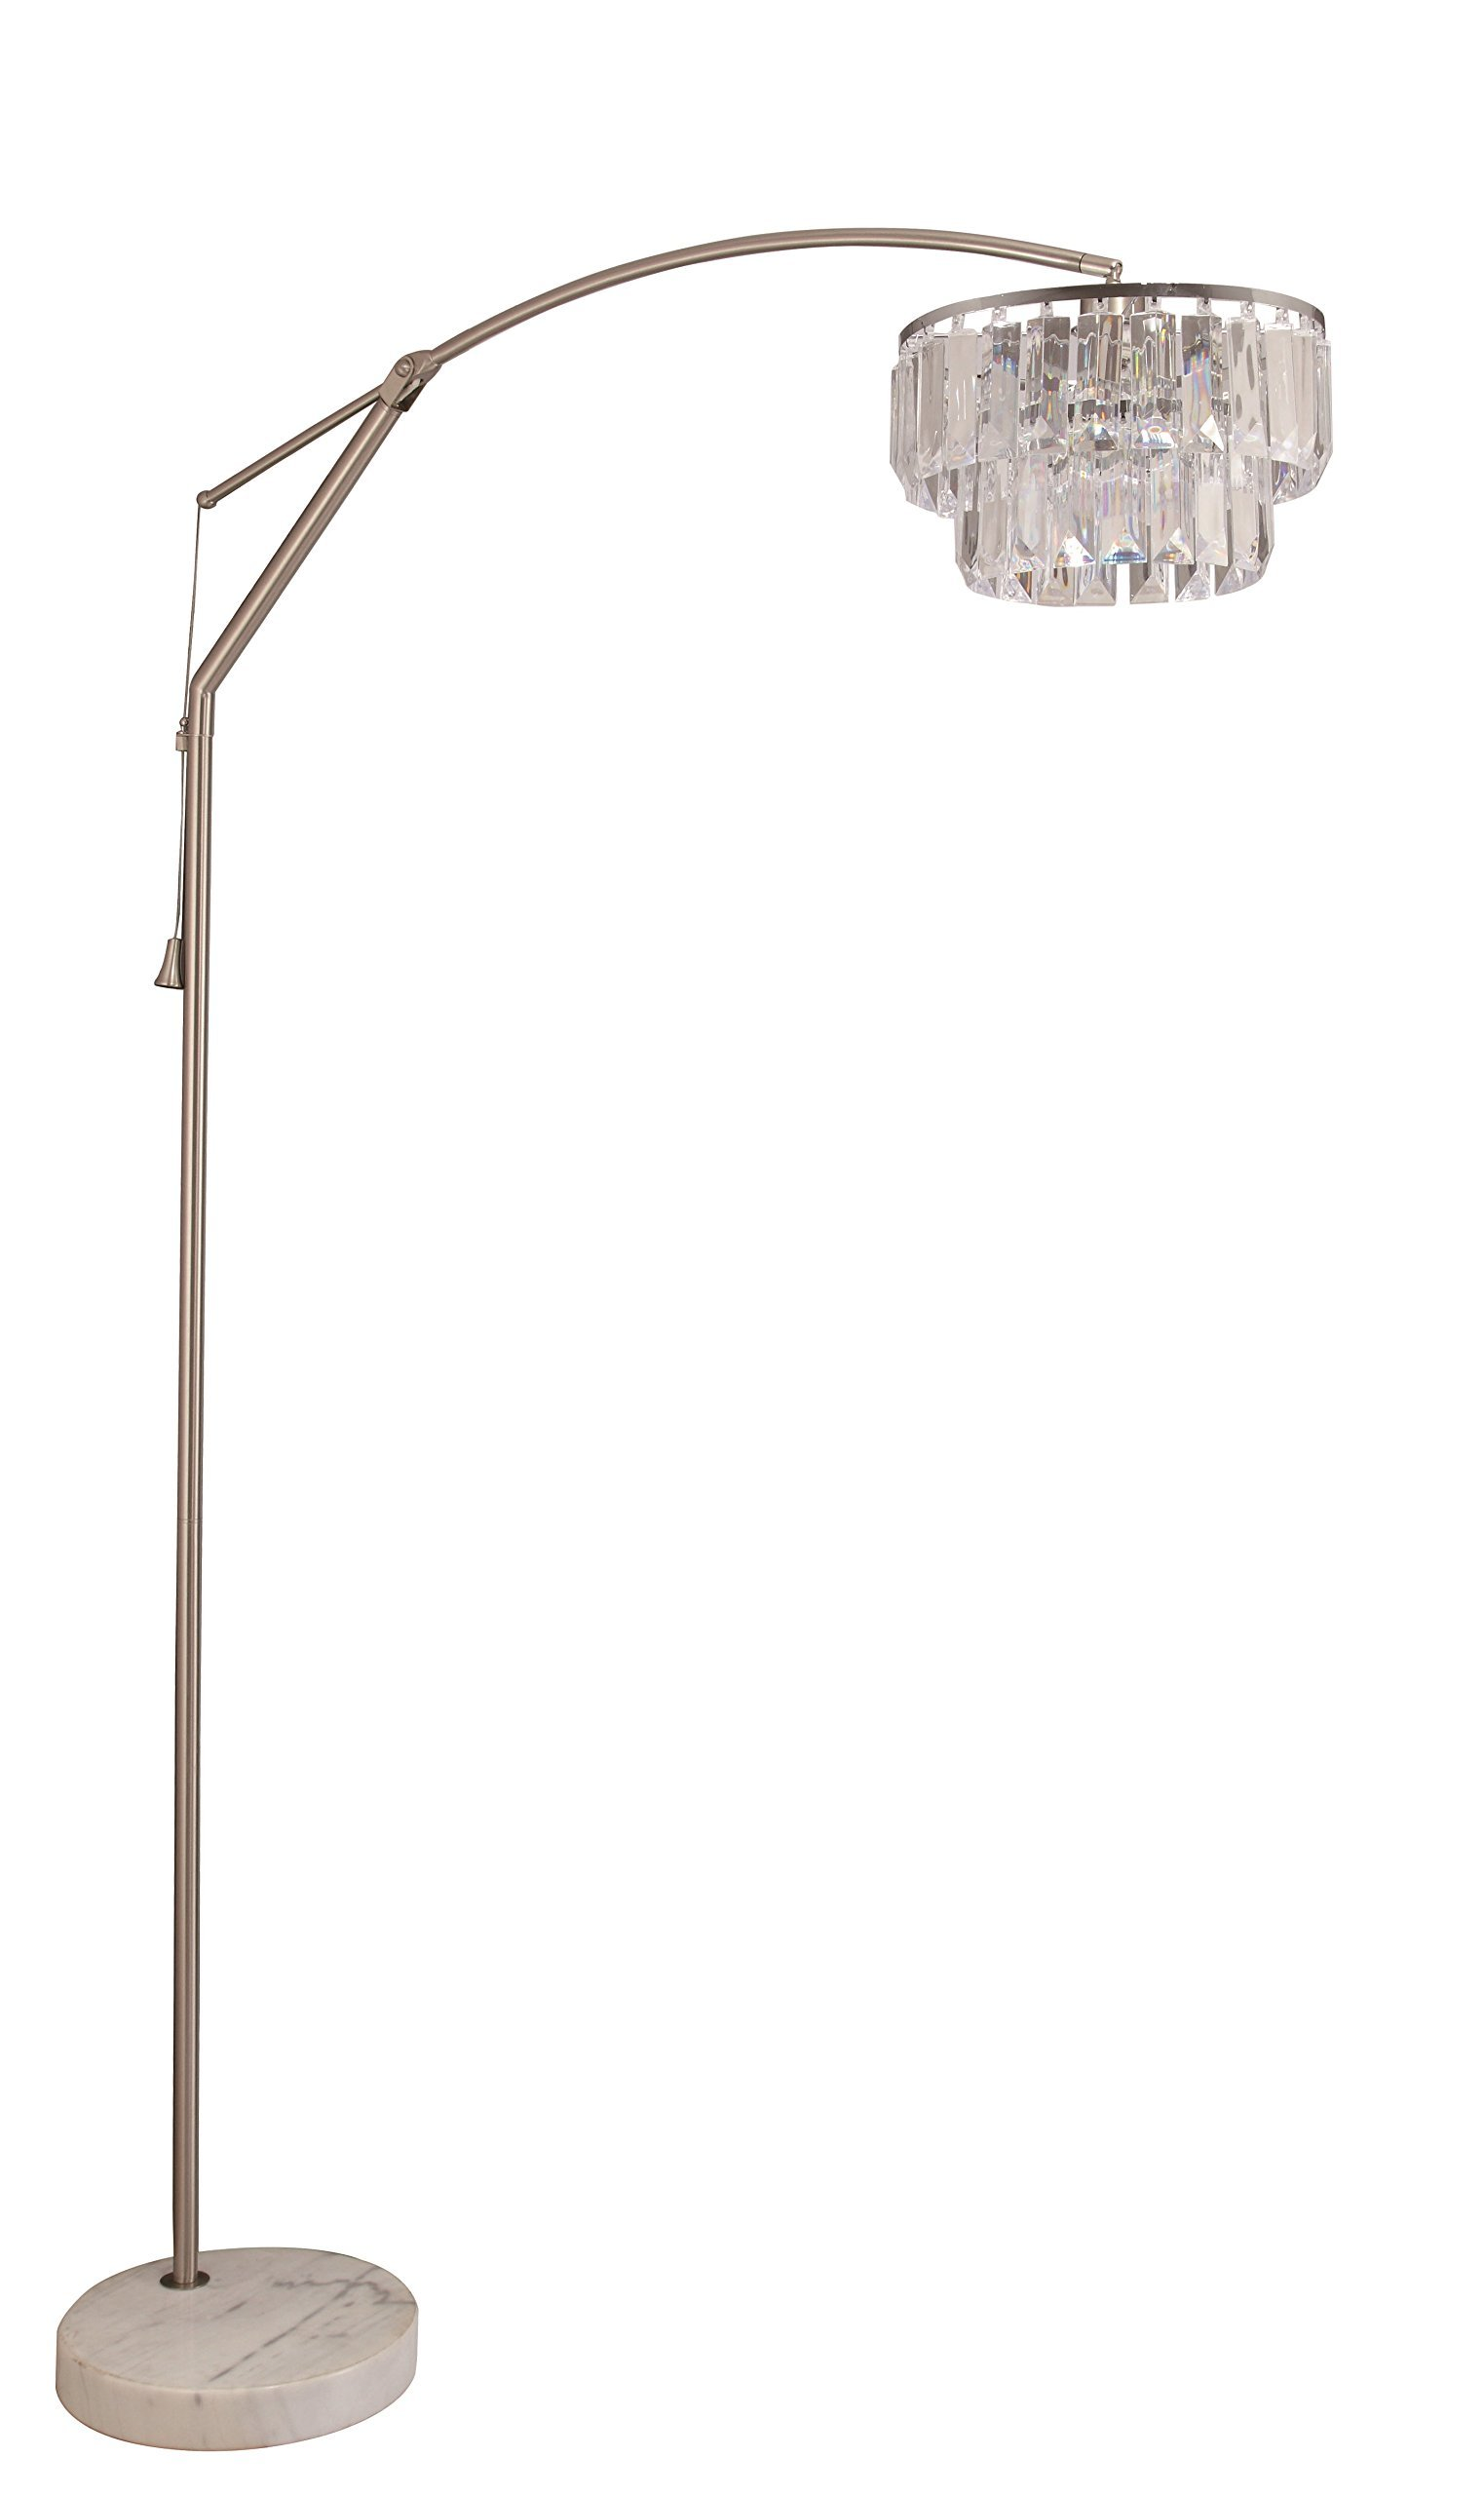 81''H Steel Adjustable Arching Floor Lamp with Marble Base (6933CY)